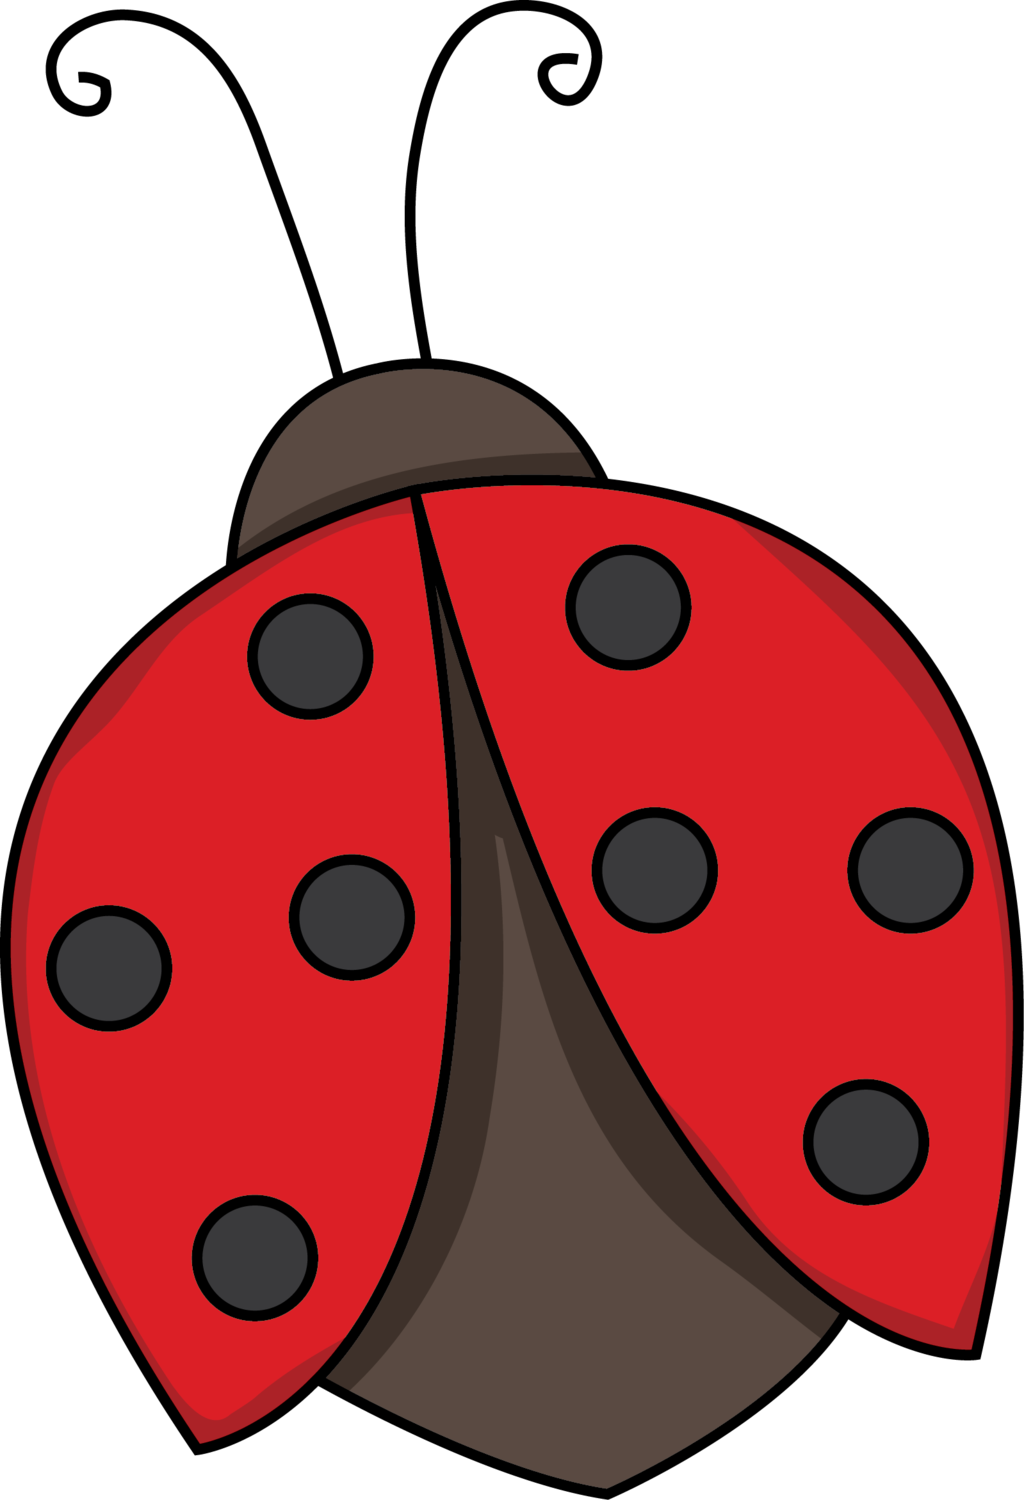 Ladybug clipart png. Flying black and white